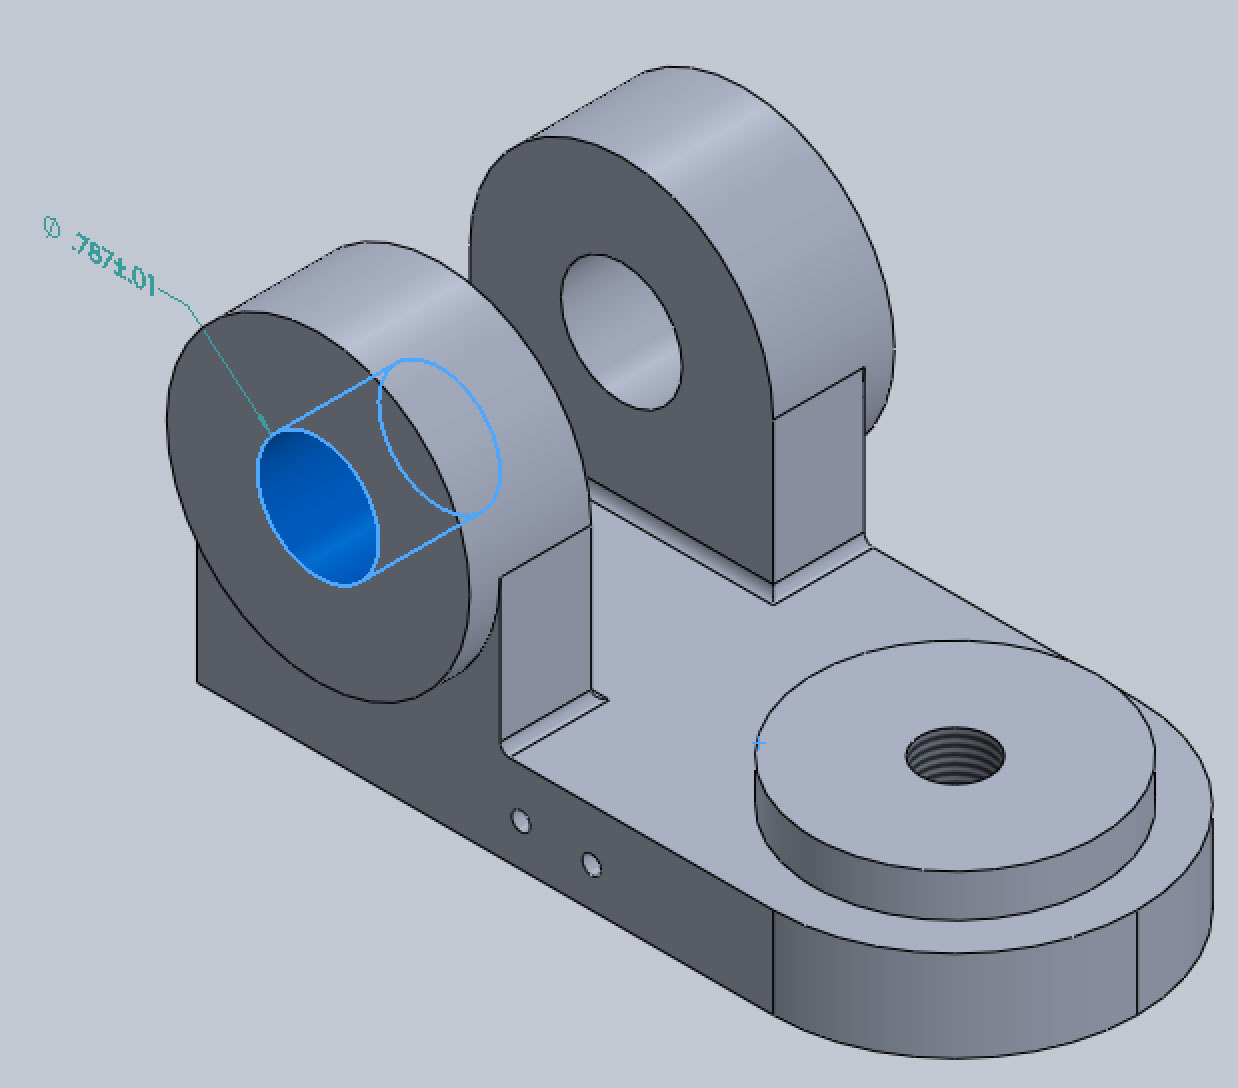 Xometry Instant Quoting Engine Add-In for SOLIDWORKS - Simple Bracket Model with Tolerances Applied